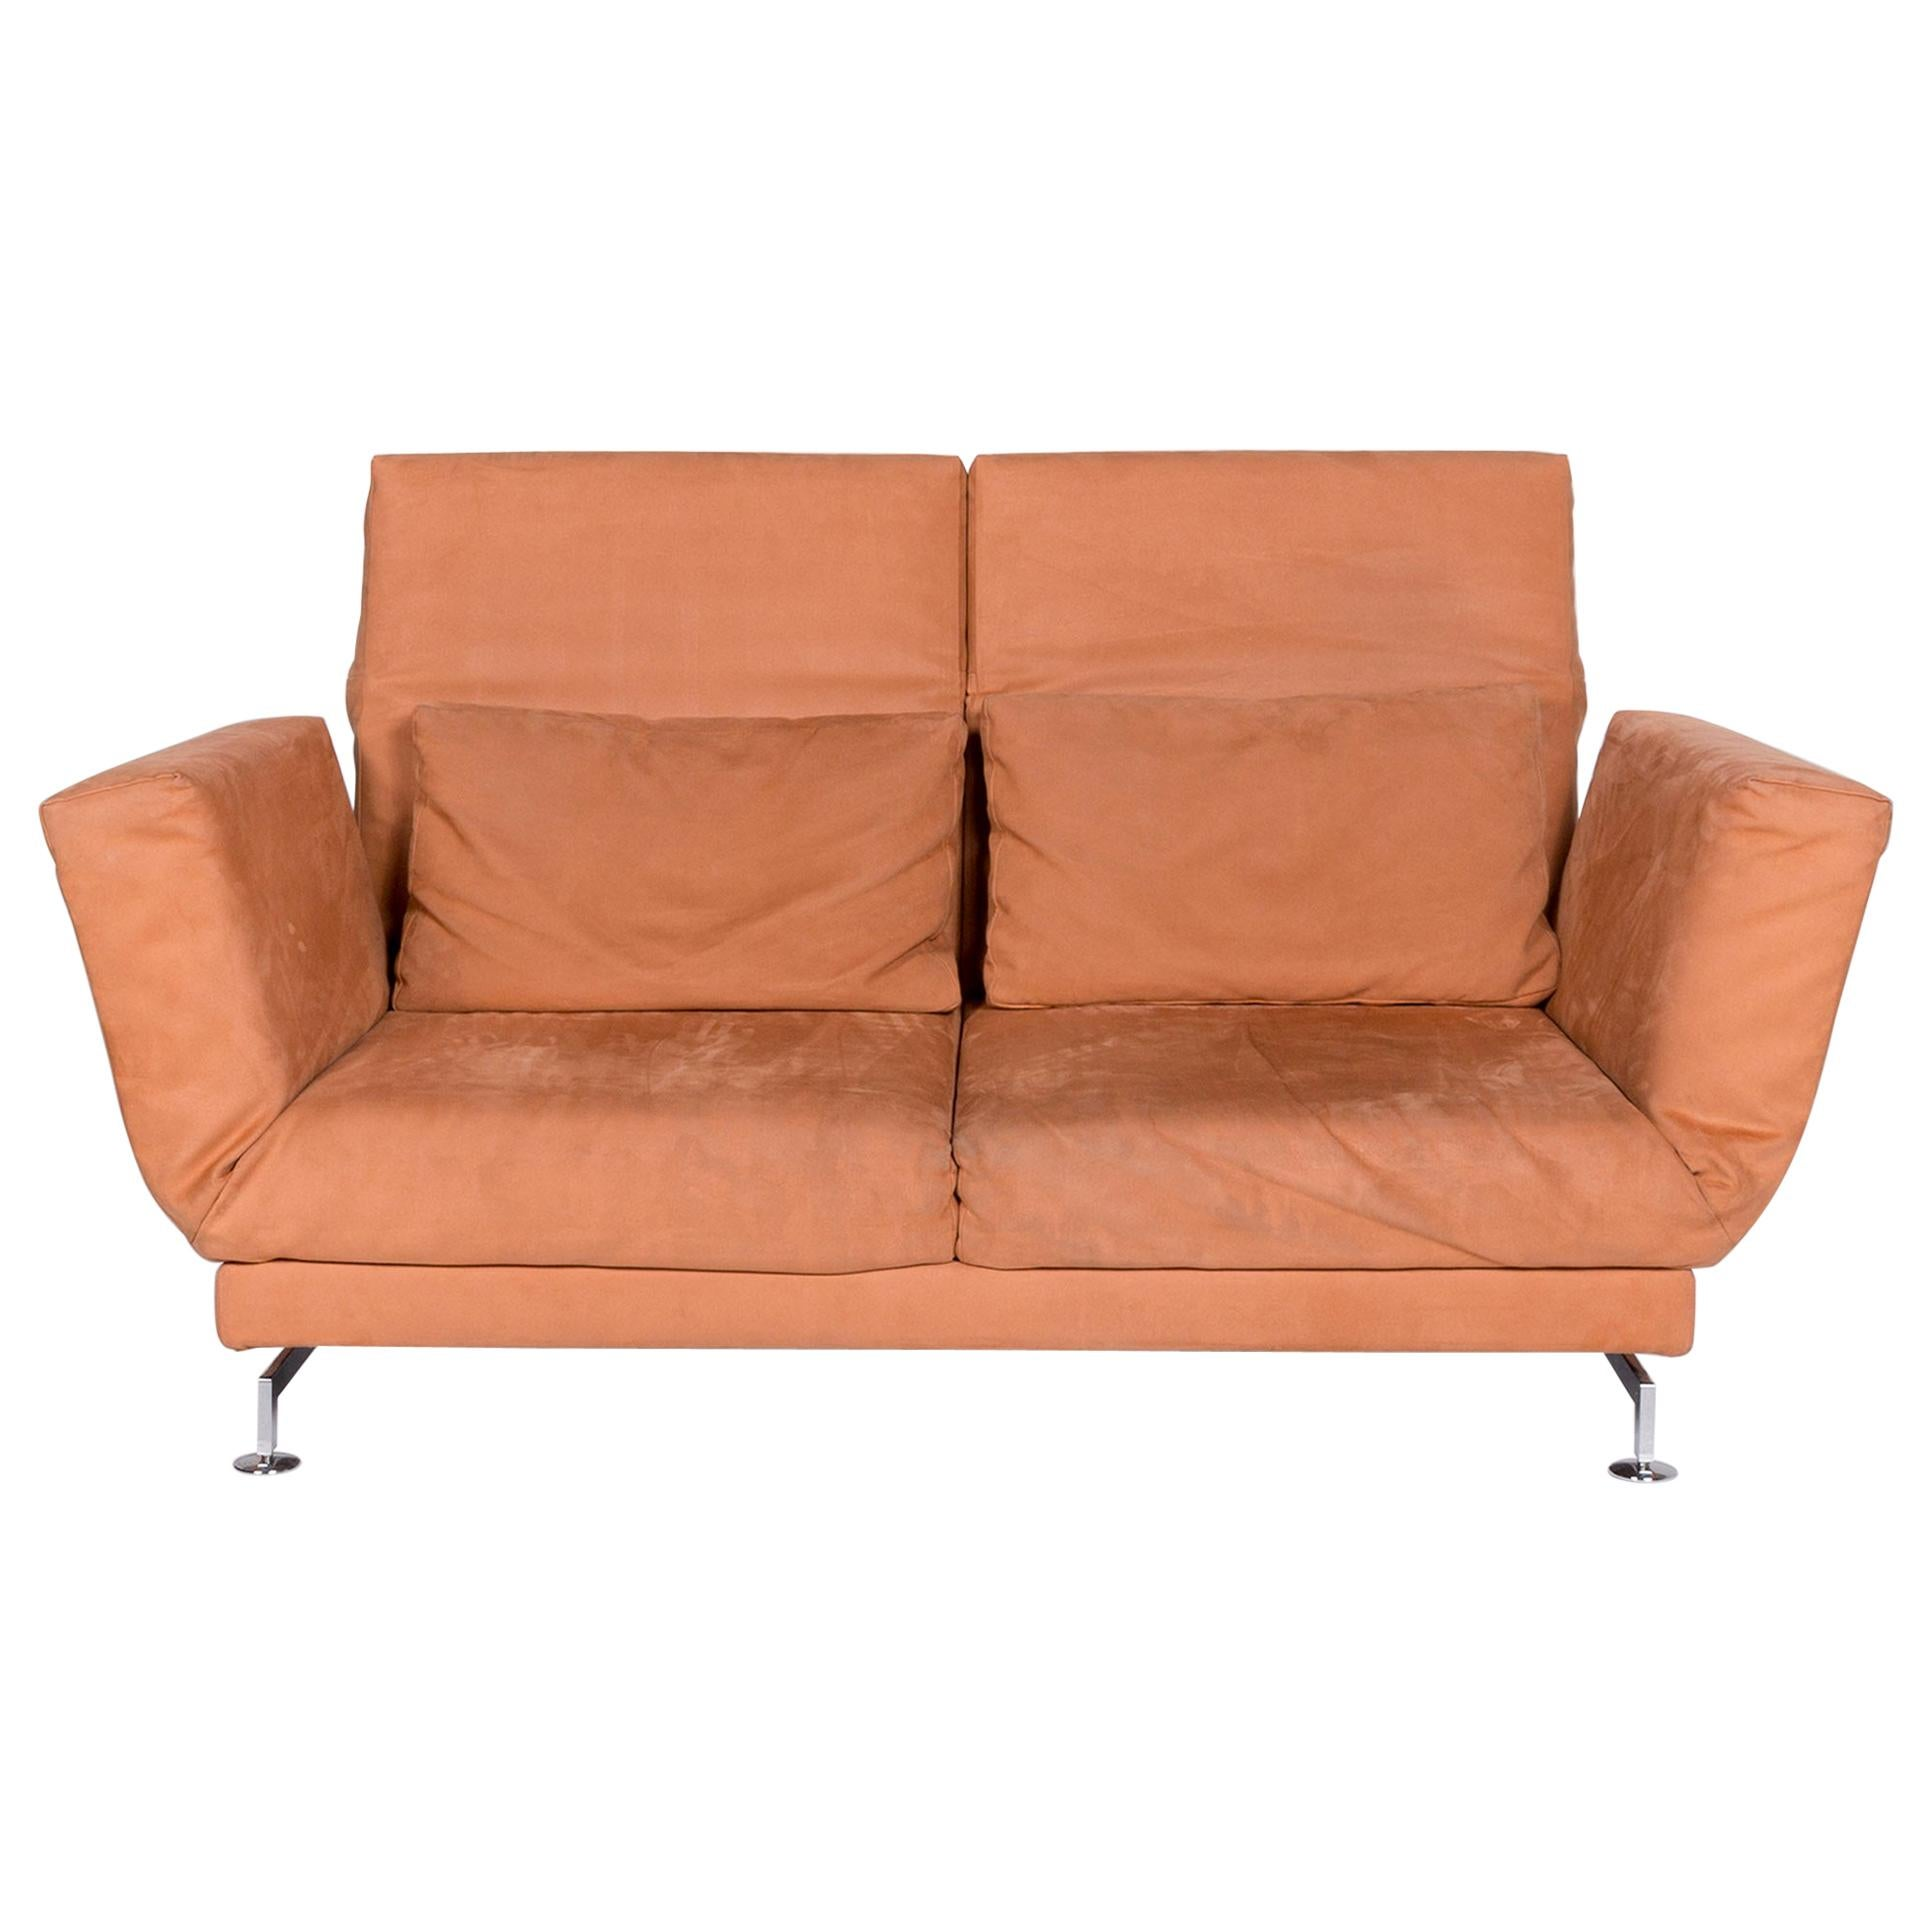 Brühl & Sippold Moule Fabric Sofa Orange Two-Seat Relax Function